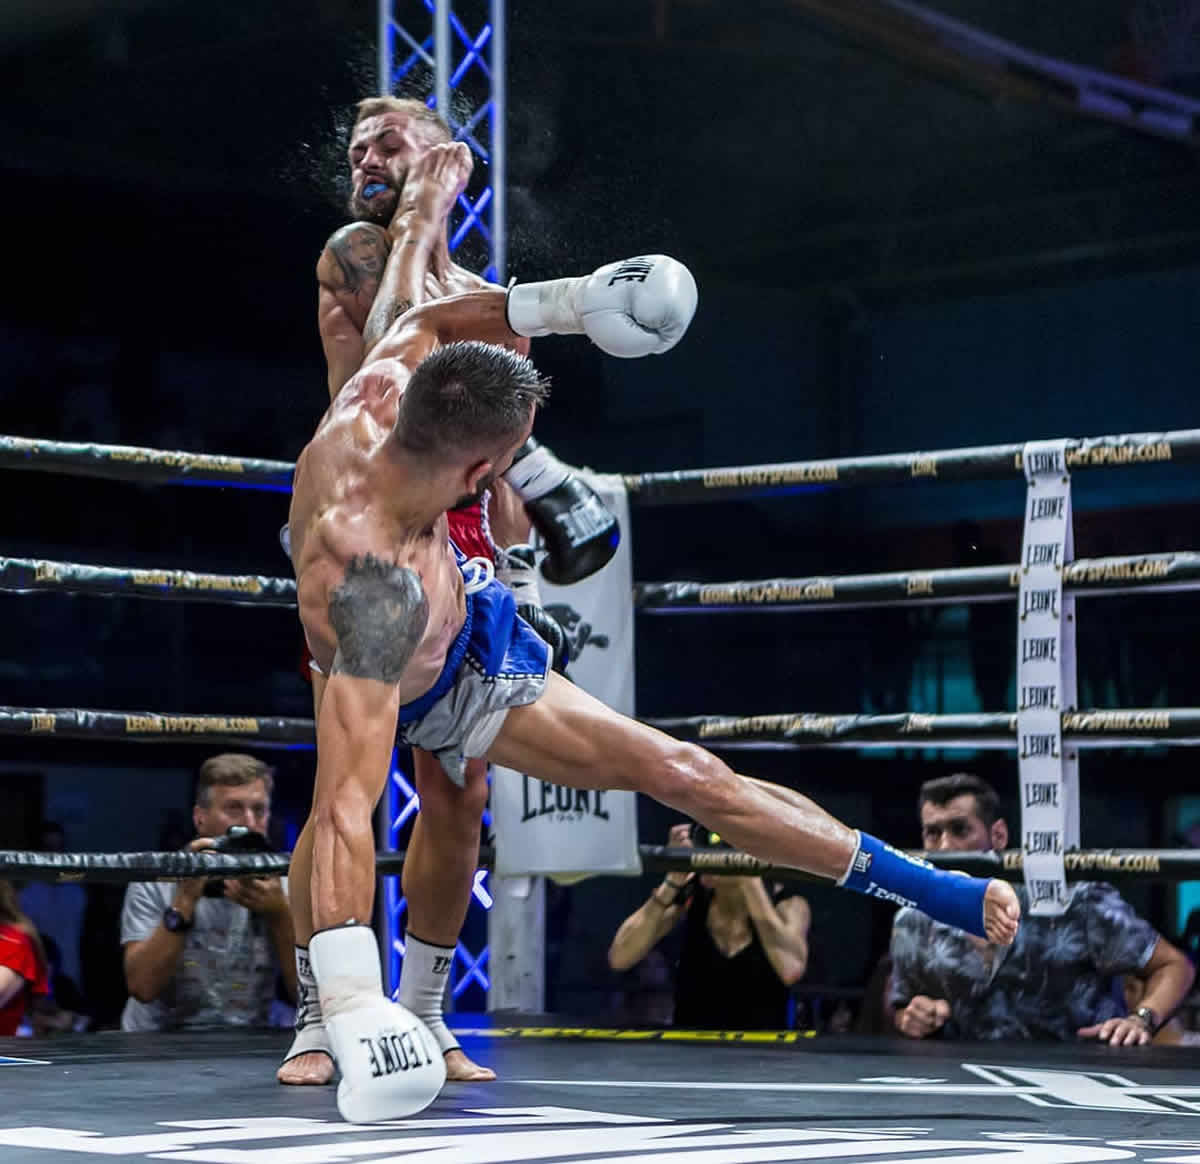 Antonio Campoy crowned WKN European Lightweight champion at Fight for Glory in Badalona -